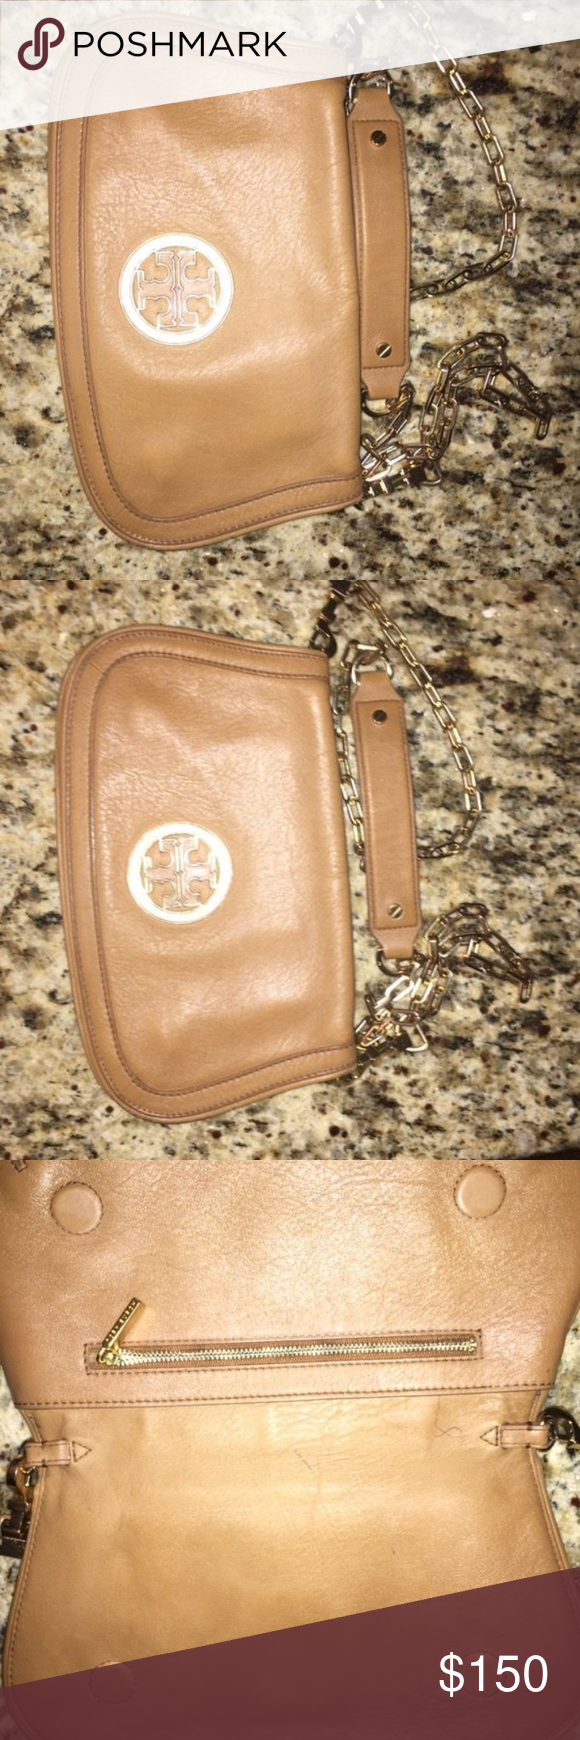 Tory Burch cross body In good condition. Has some pen scratches from inside only. Tory Burch Bags Crossbody Bags